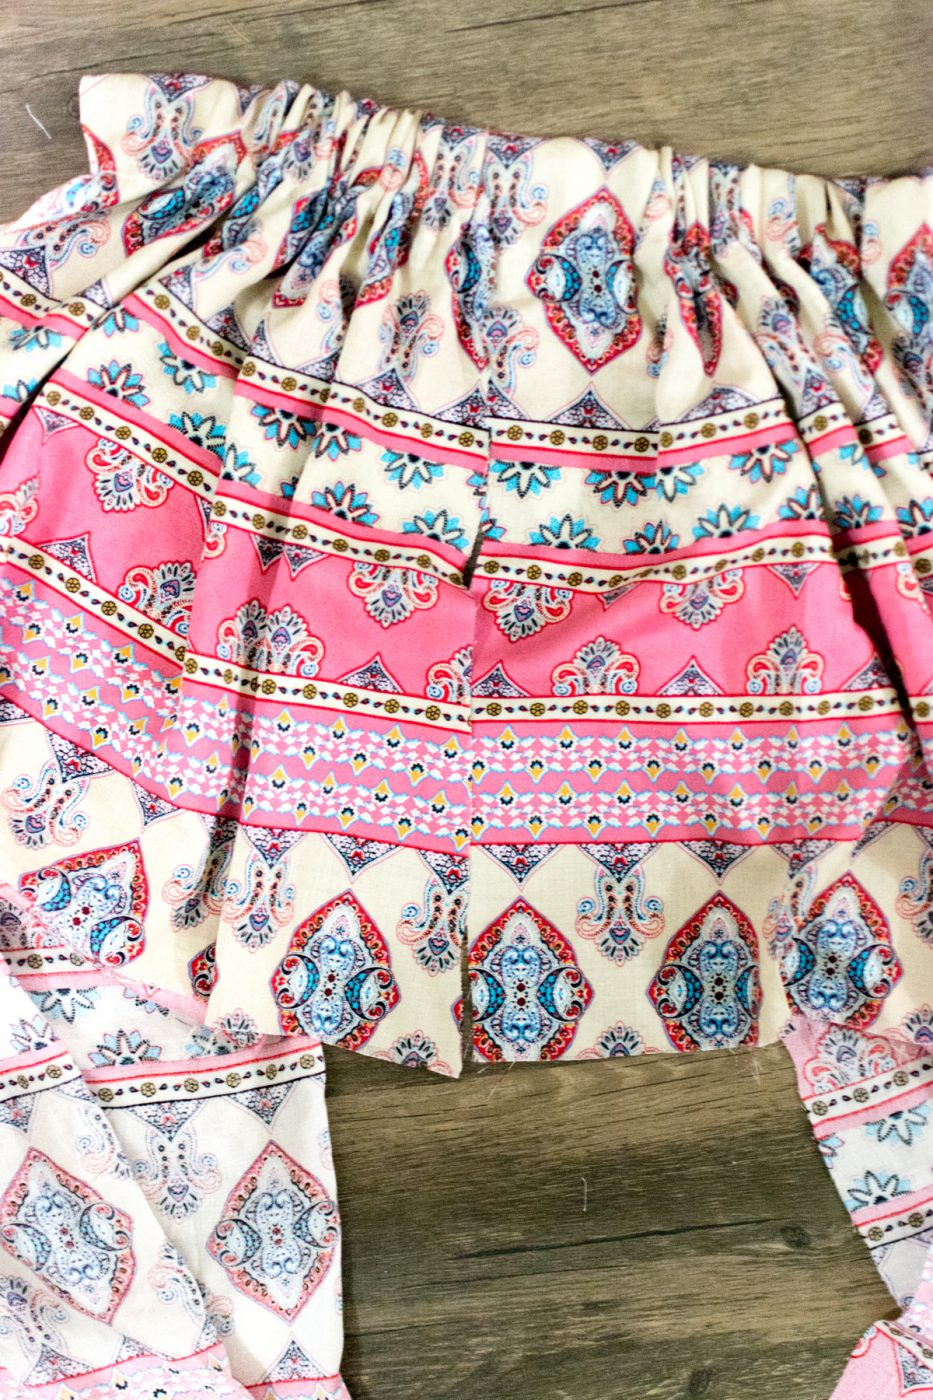 Lining of DIY maxi skirt